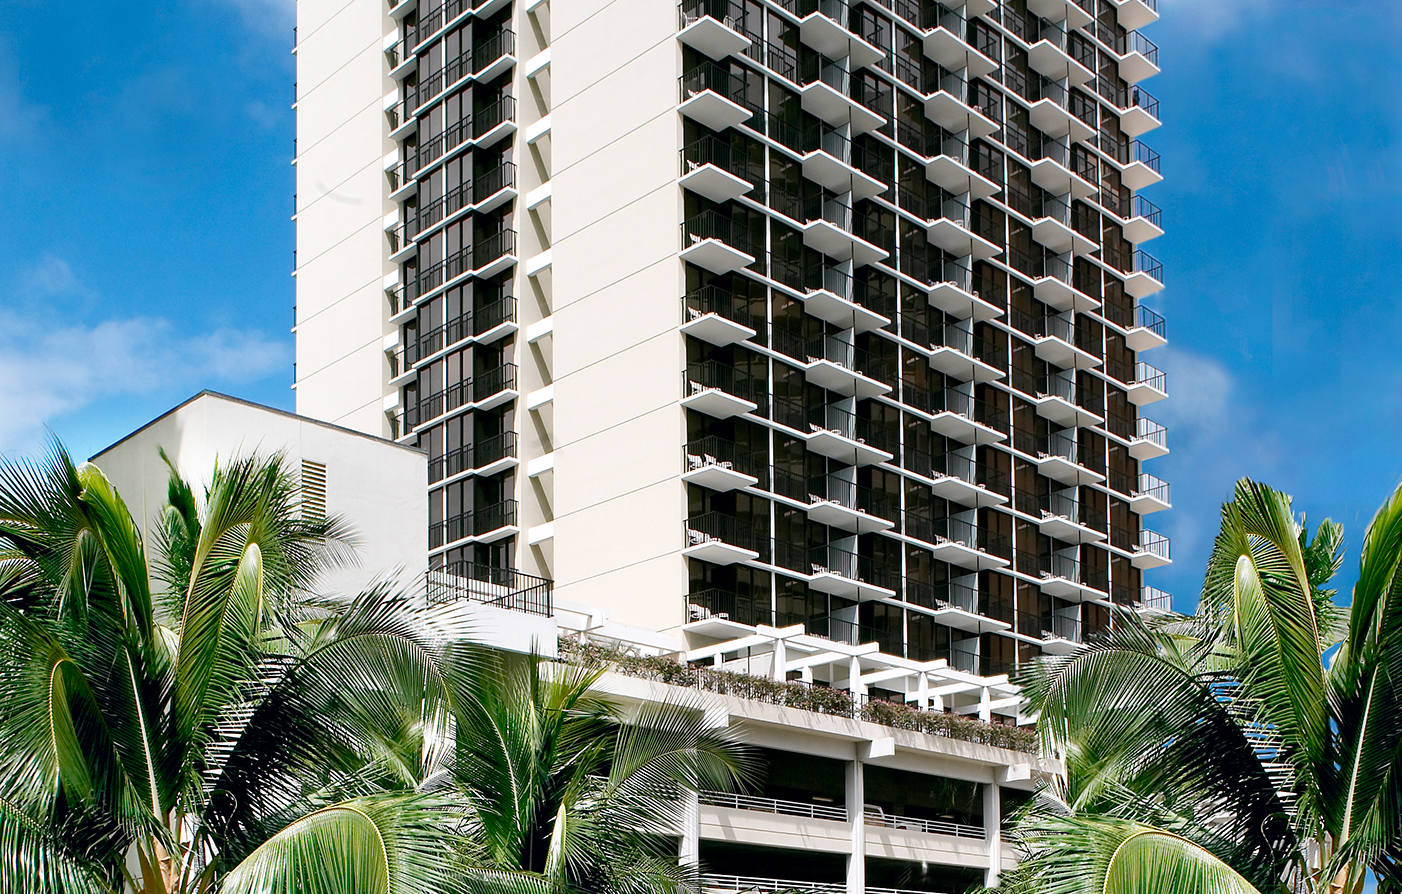 Waikiki Parc Hotel  in Honolulu